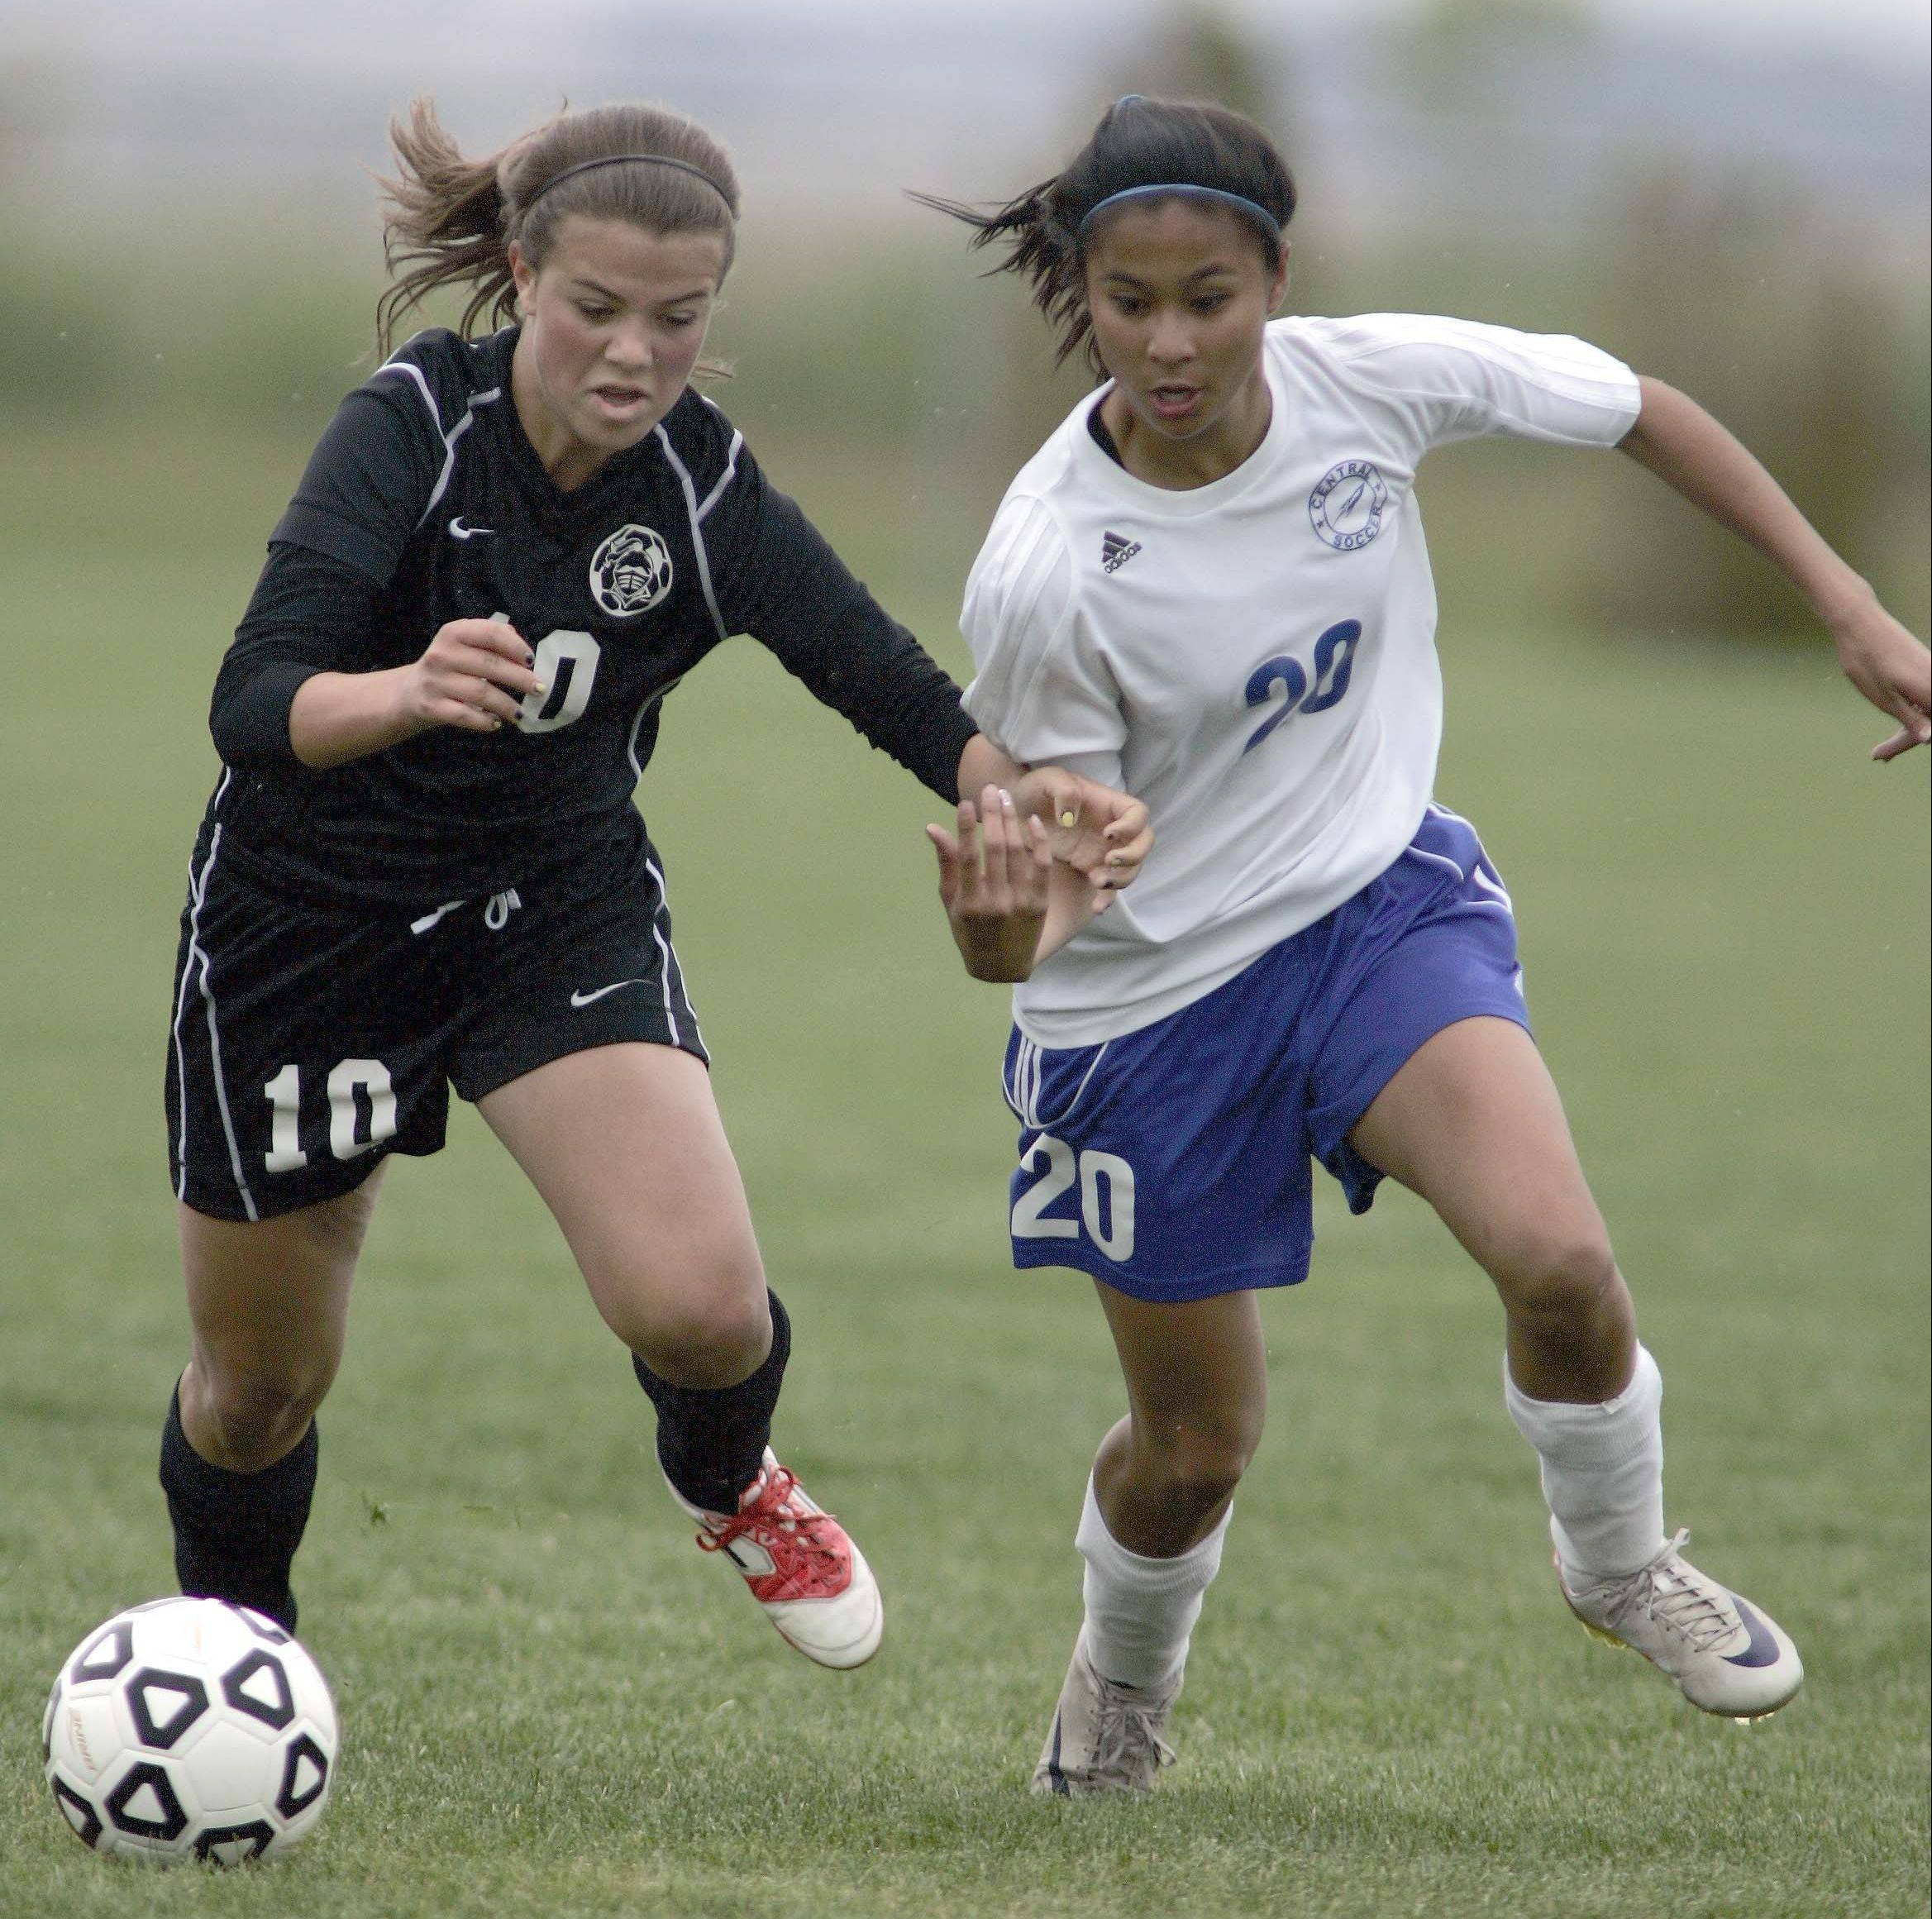 Burlington's Camille Delacruz (20), a Northern Iowa signee, pushes past Kaneland's Michelle Ortiz during a game last season.